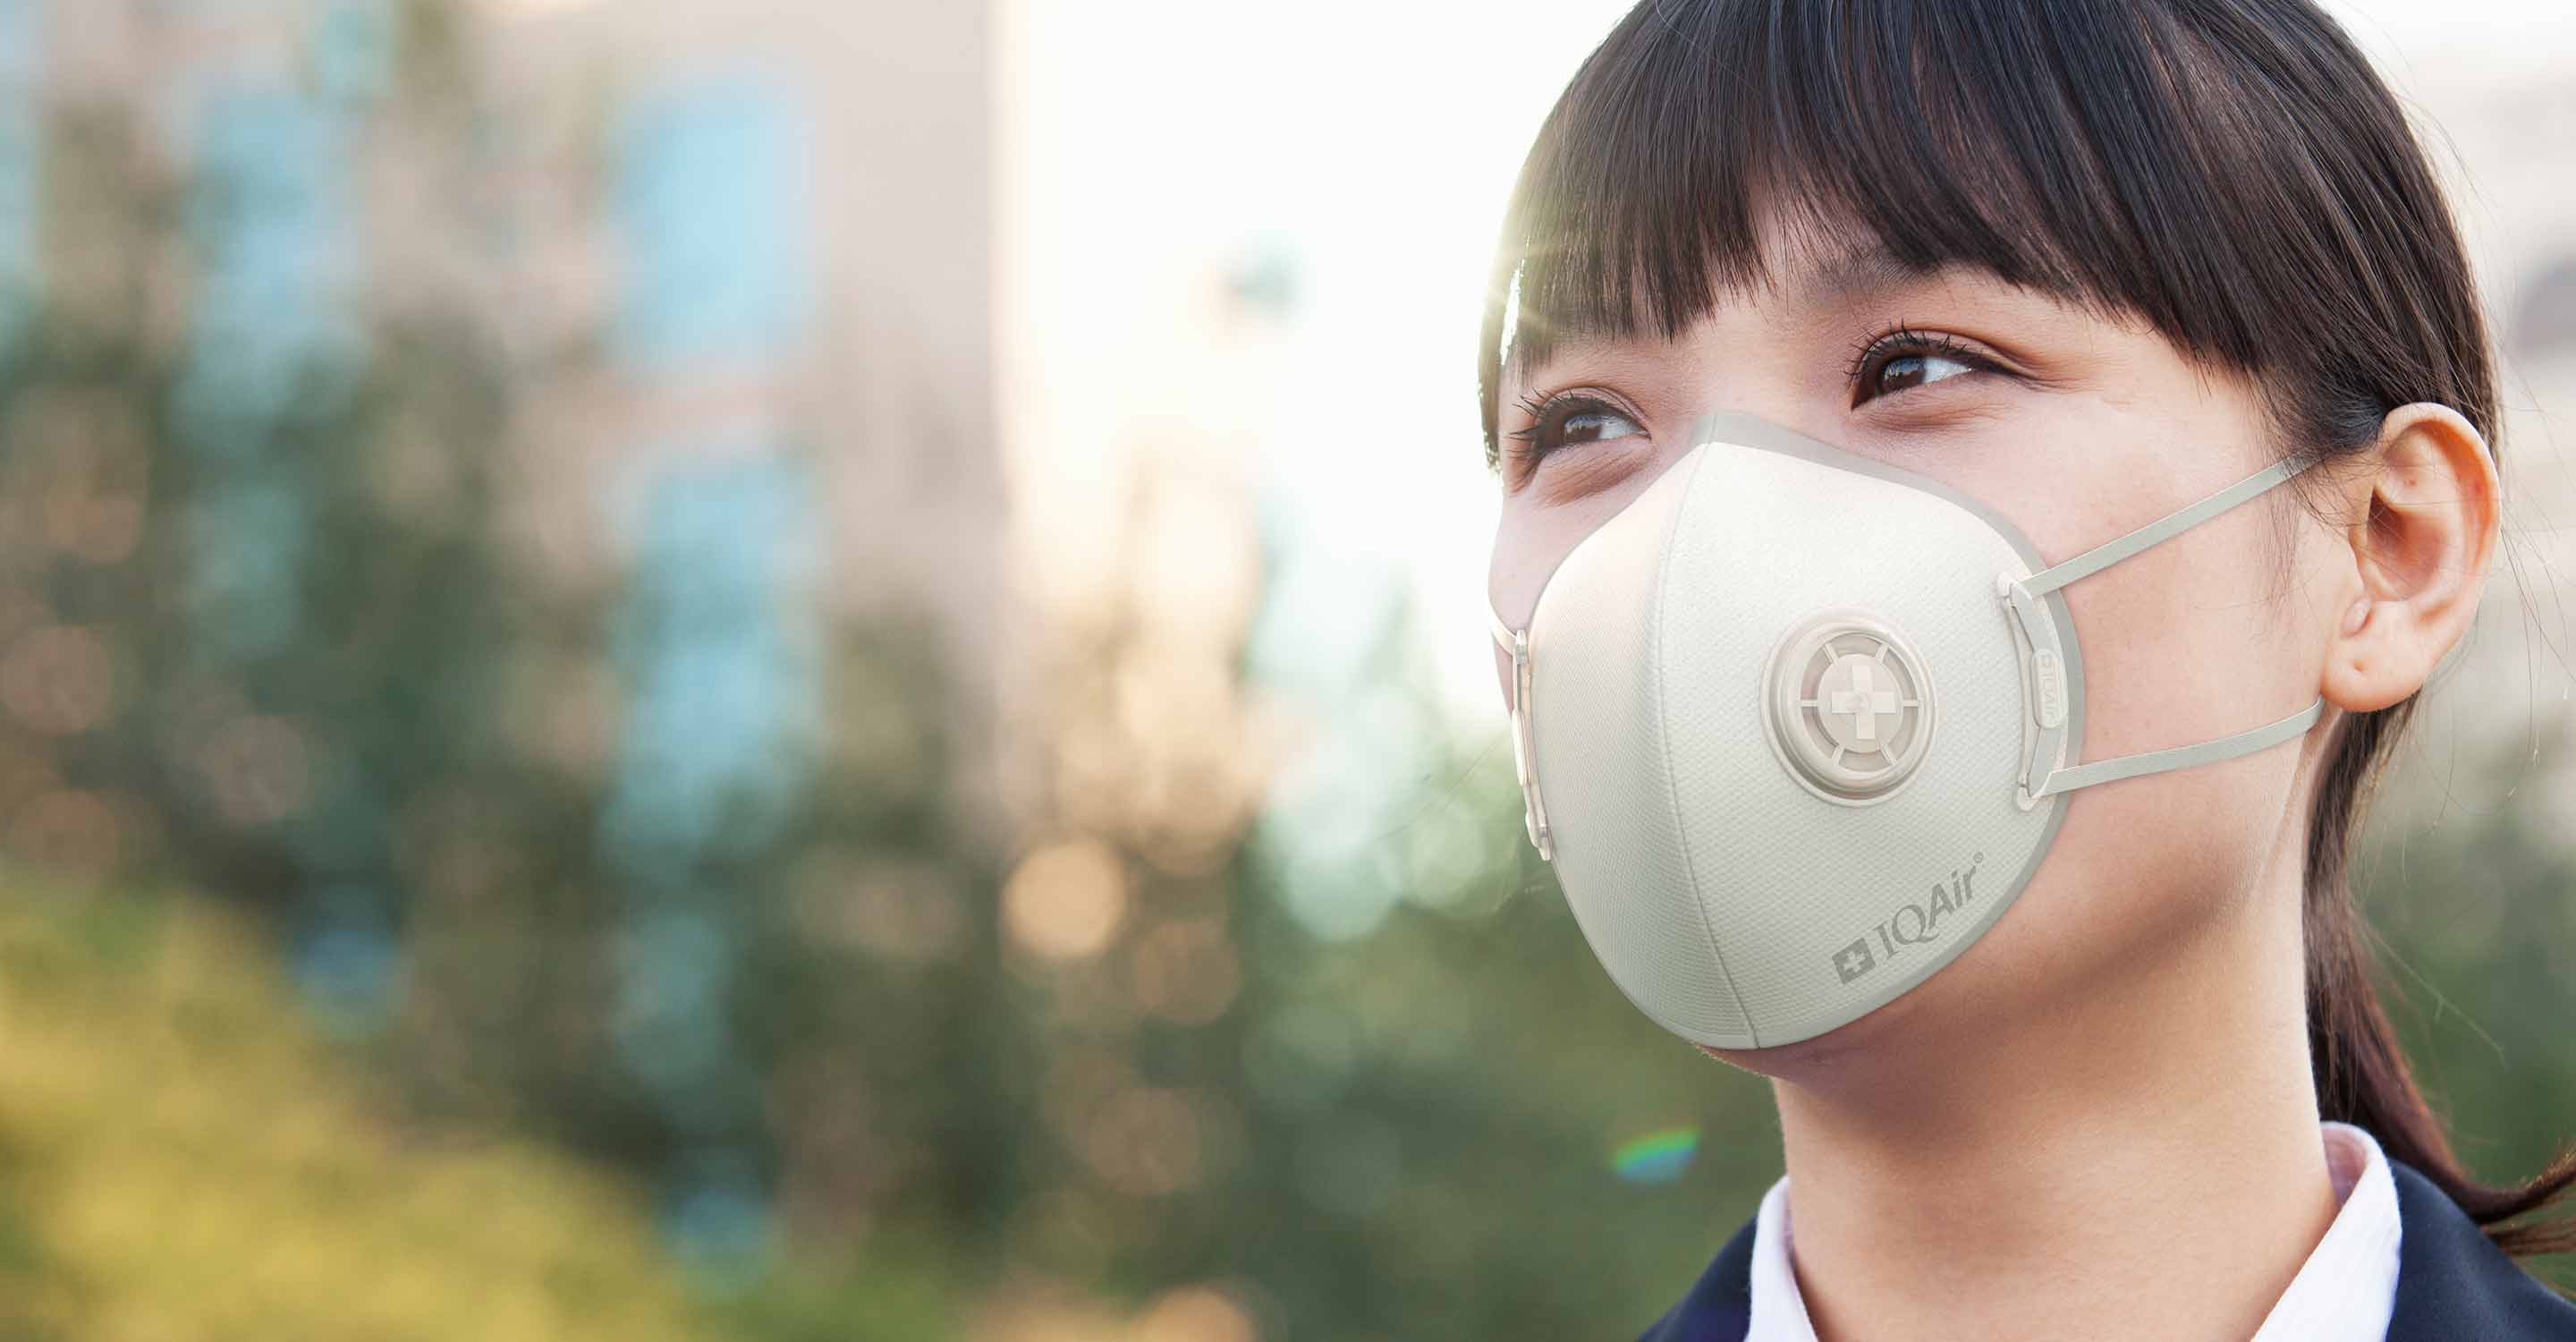 Swiss air quality expert IQAir launches medical-grade air pollution protection mask